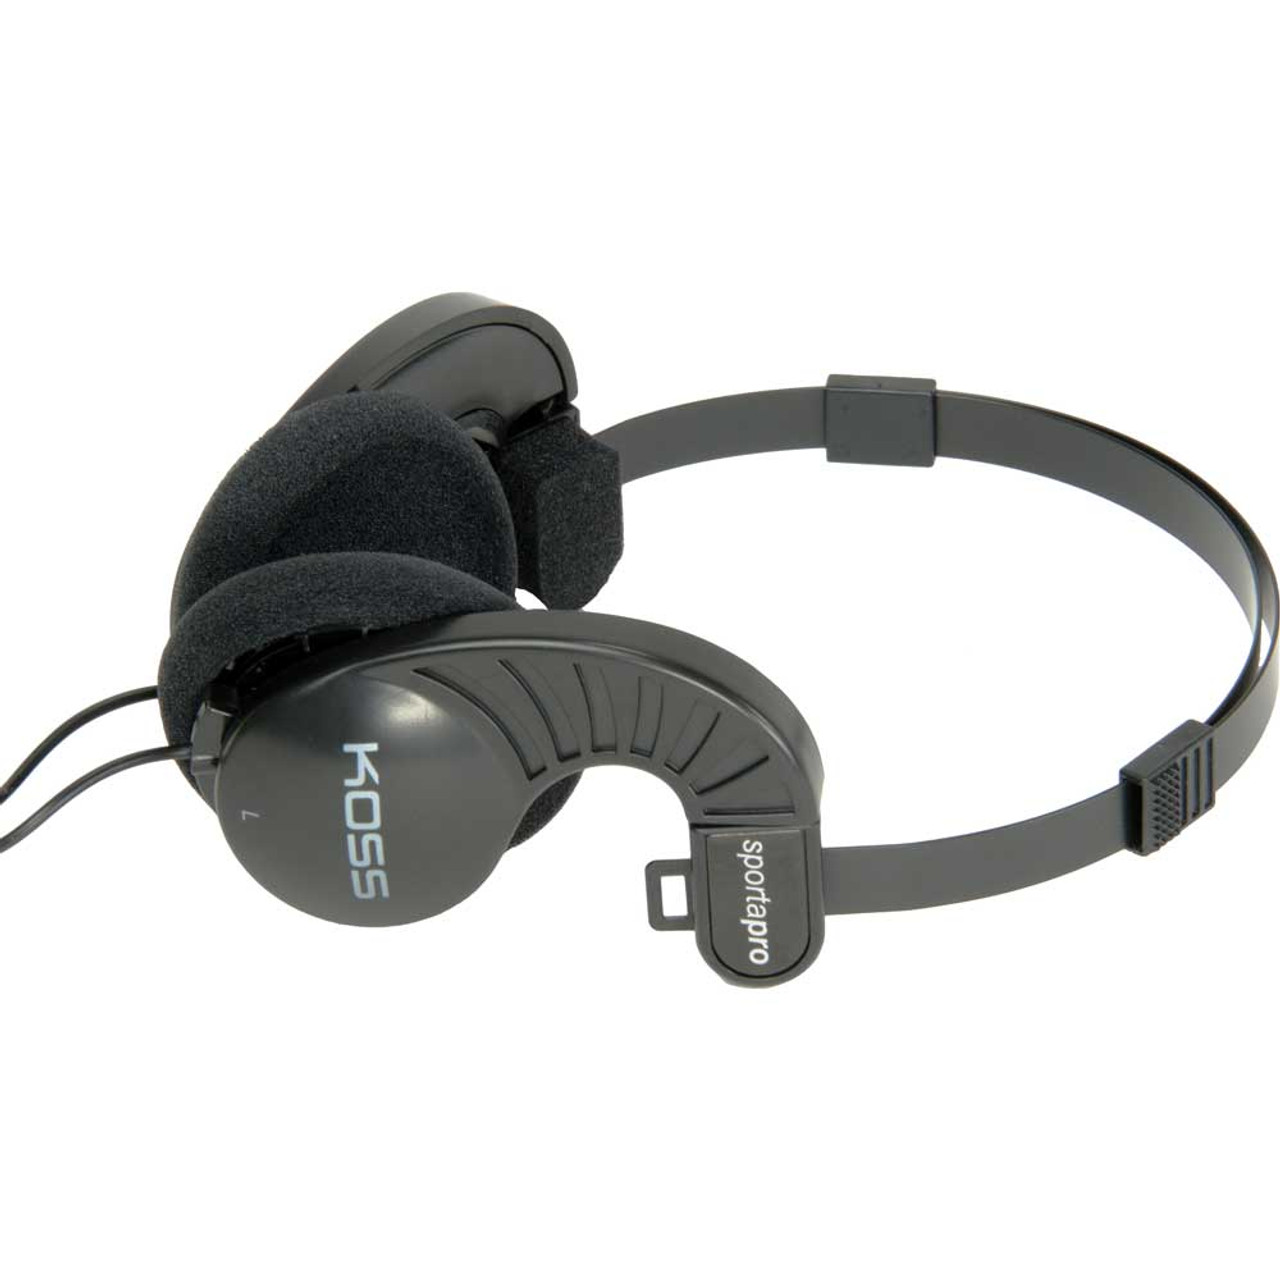 Cardionics 718-0415 E-Scope Convertible Headphones